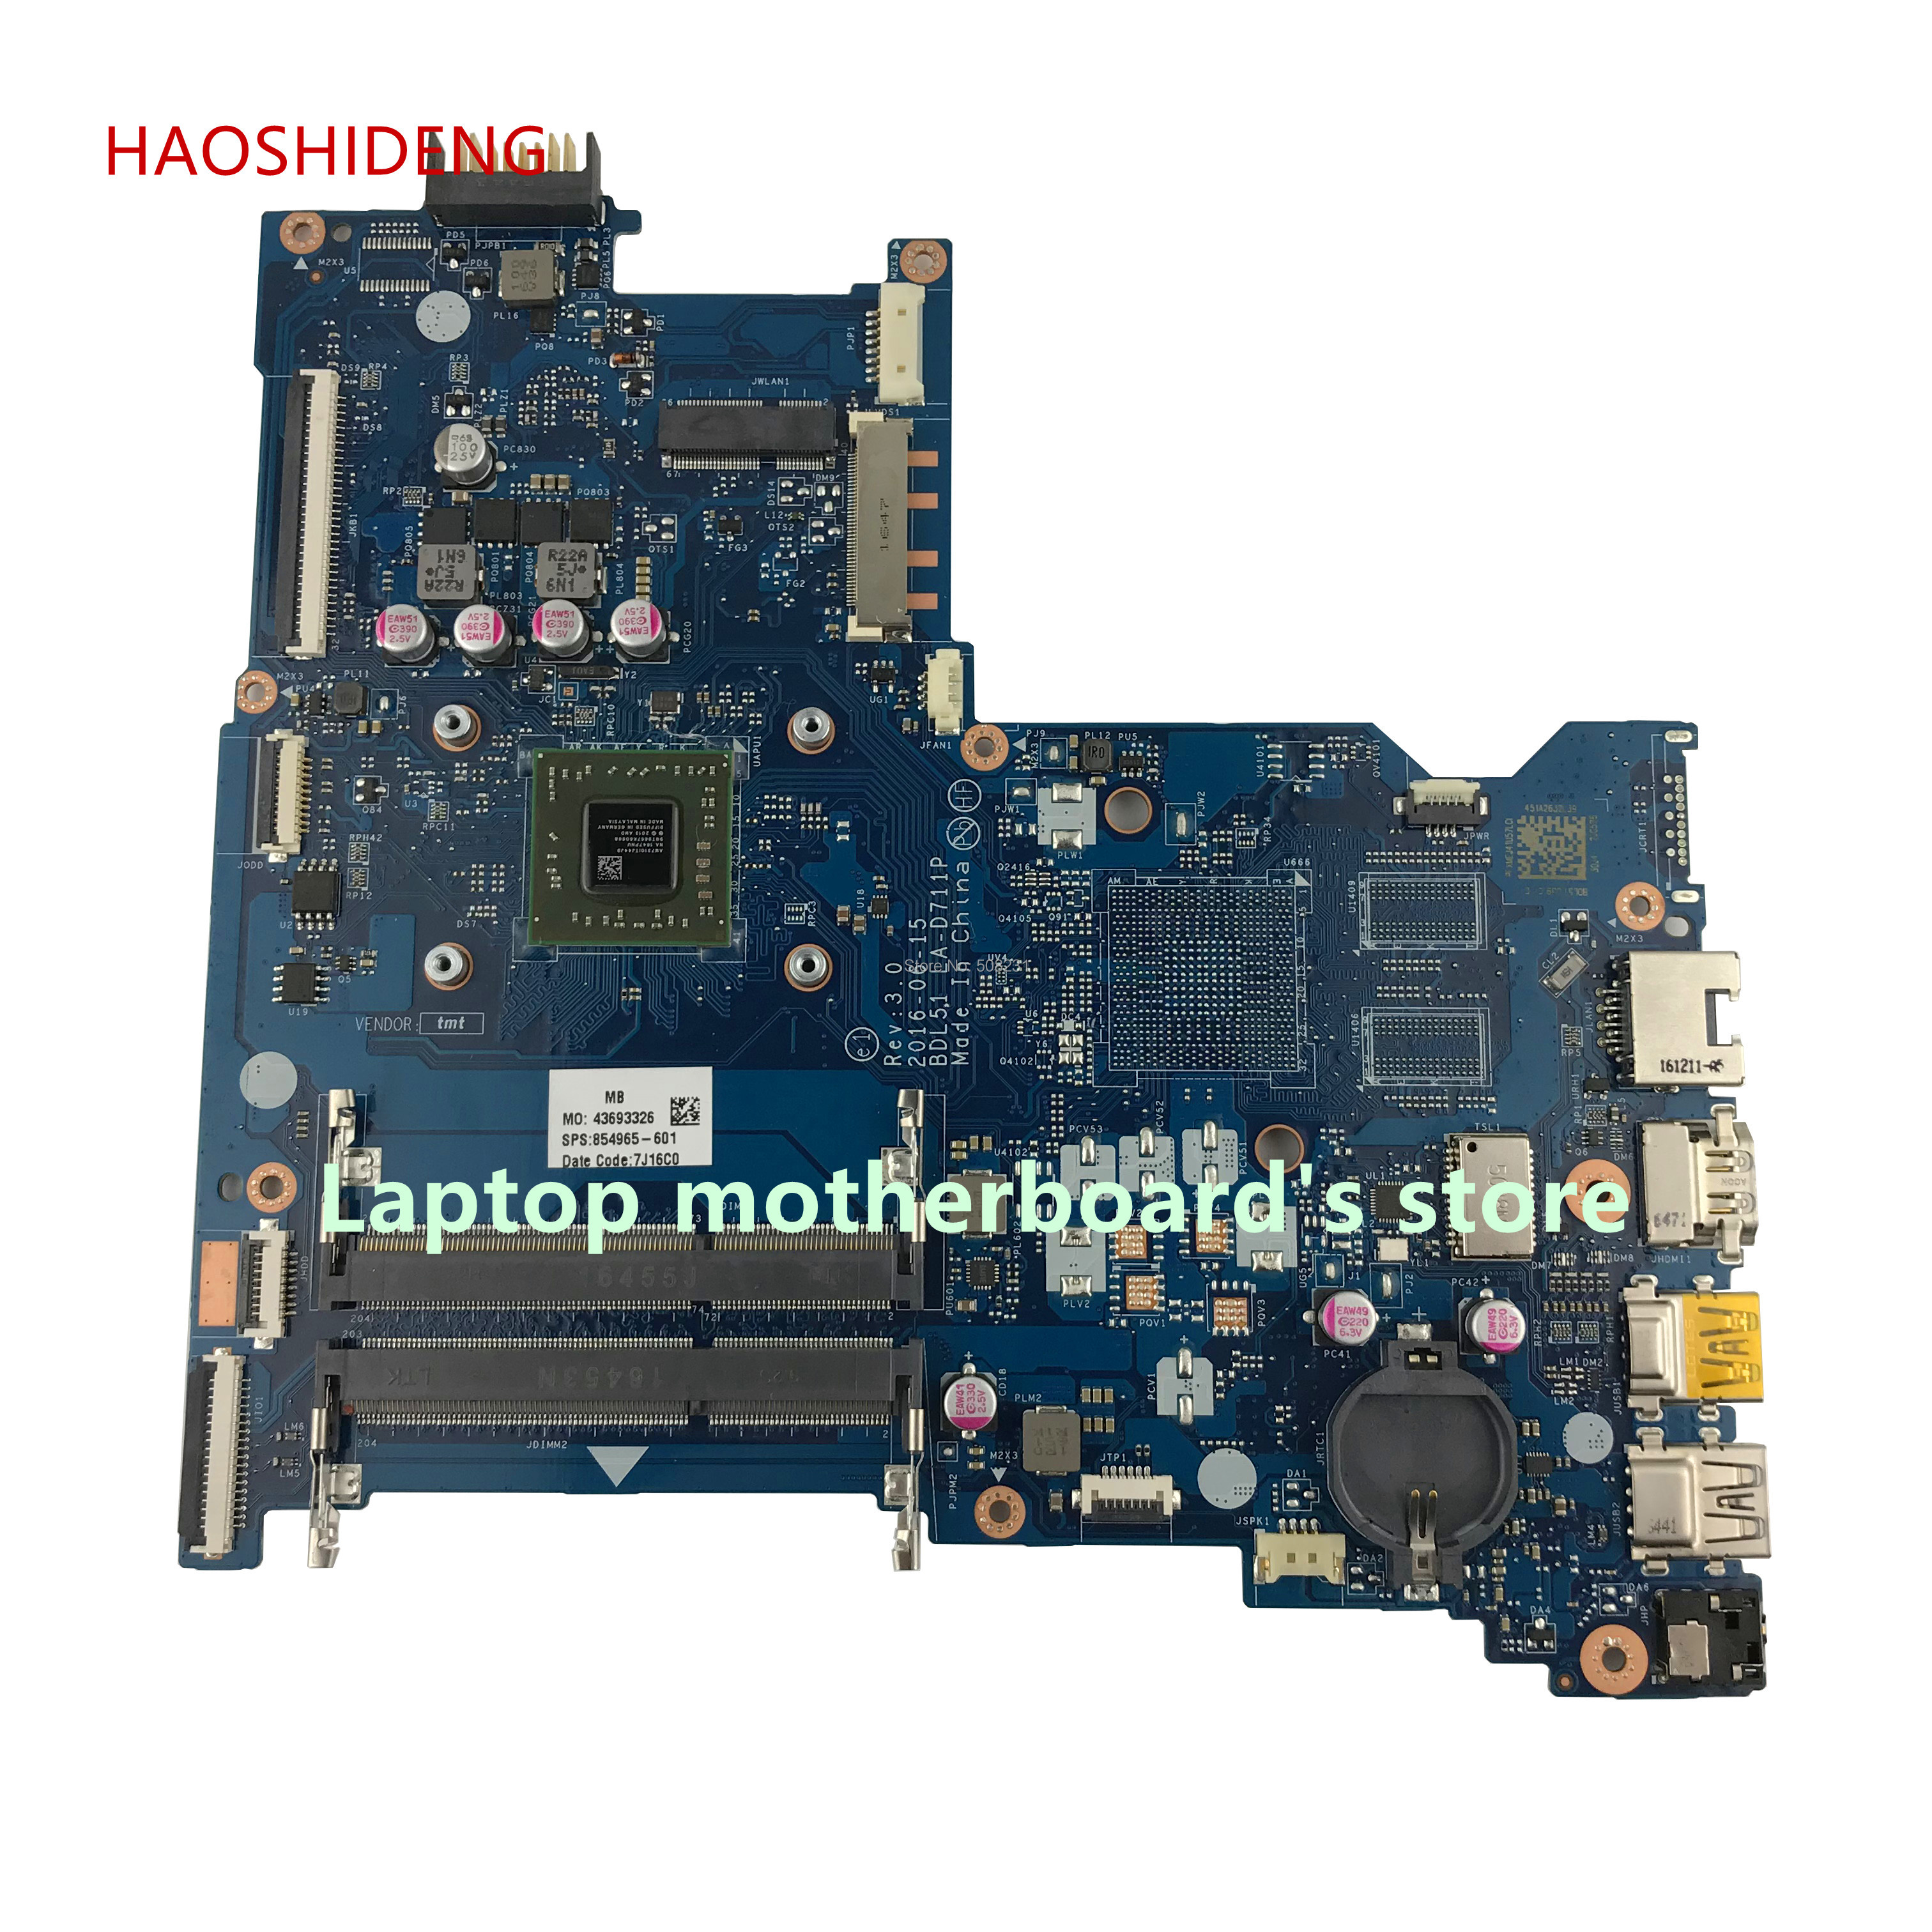 HAOSHIDENG 854965-601 LA-D711P mainboard for HP NOTEBOOK 15-BA 15Z-BA 15-BG 15-BA026CA Laptop motherboard A6-7310 fully Tested electric shock mosquito killer lamp led solar powered camp tent bulb light no radiation mosquito trap waterproof outdoor decor